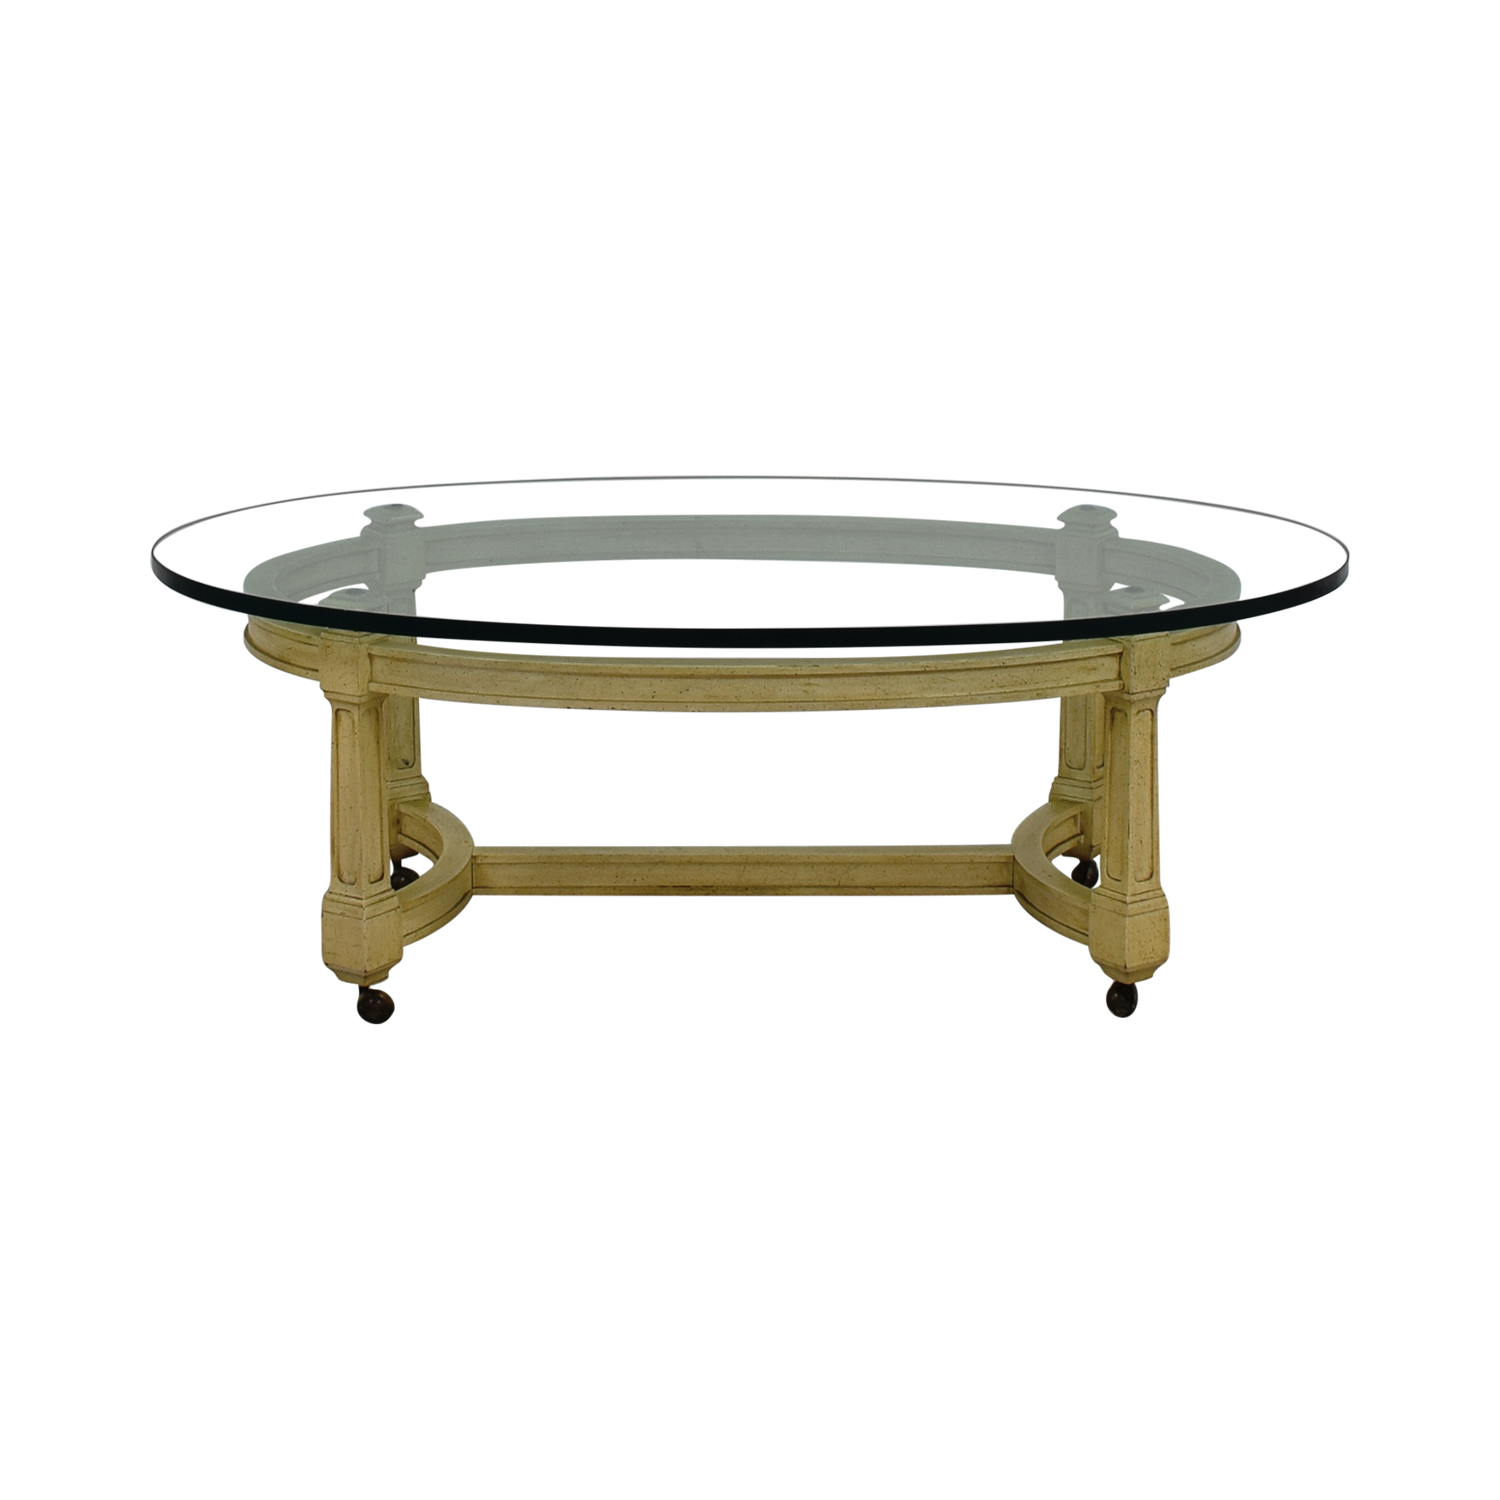 Off White and Glass Oval Coffee Table on Castors discount